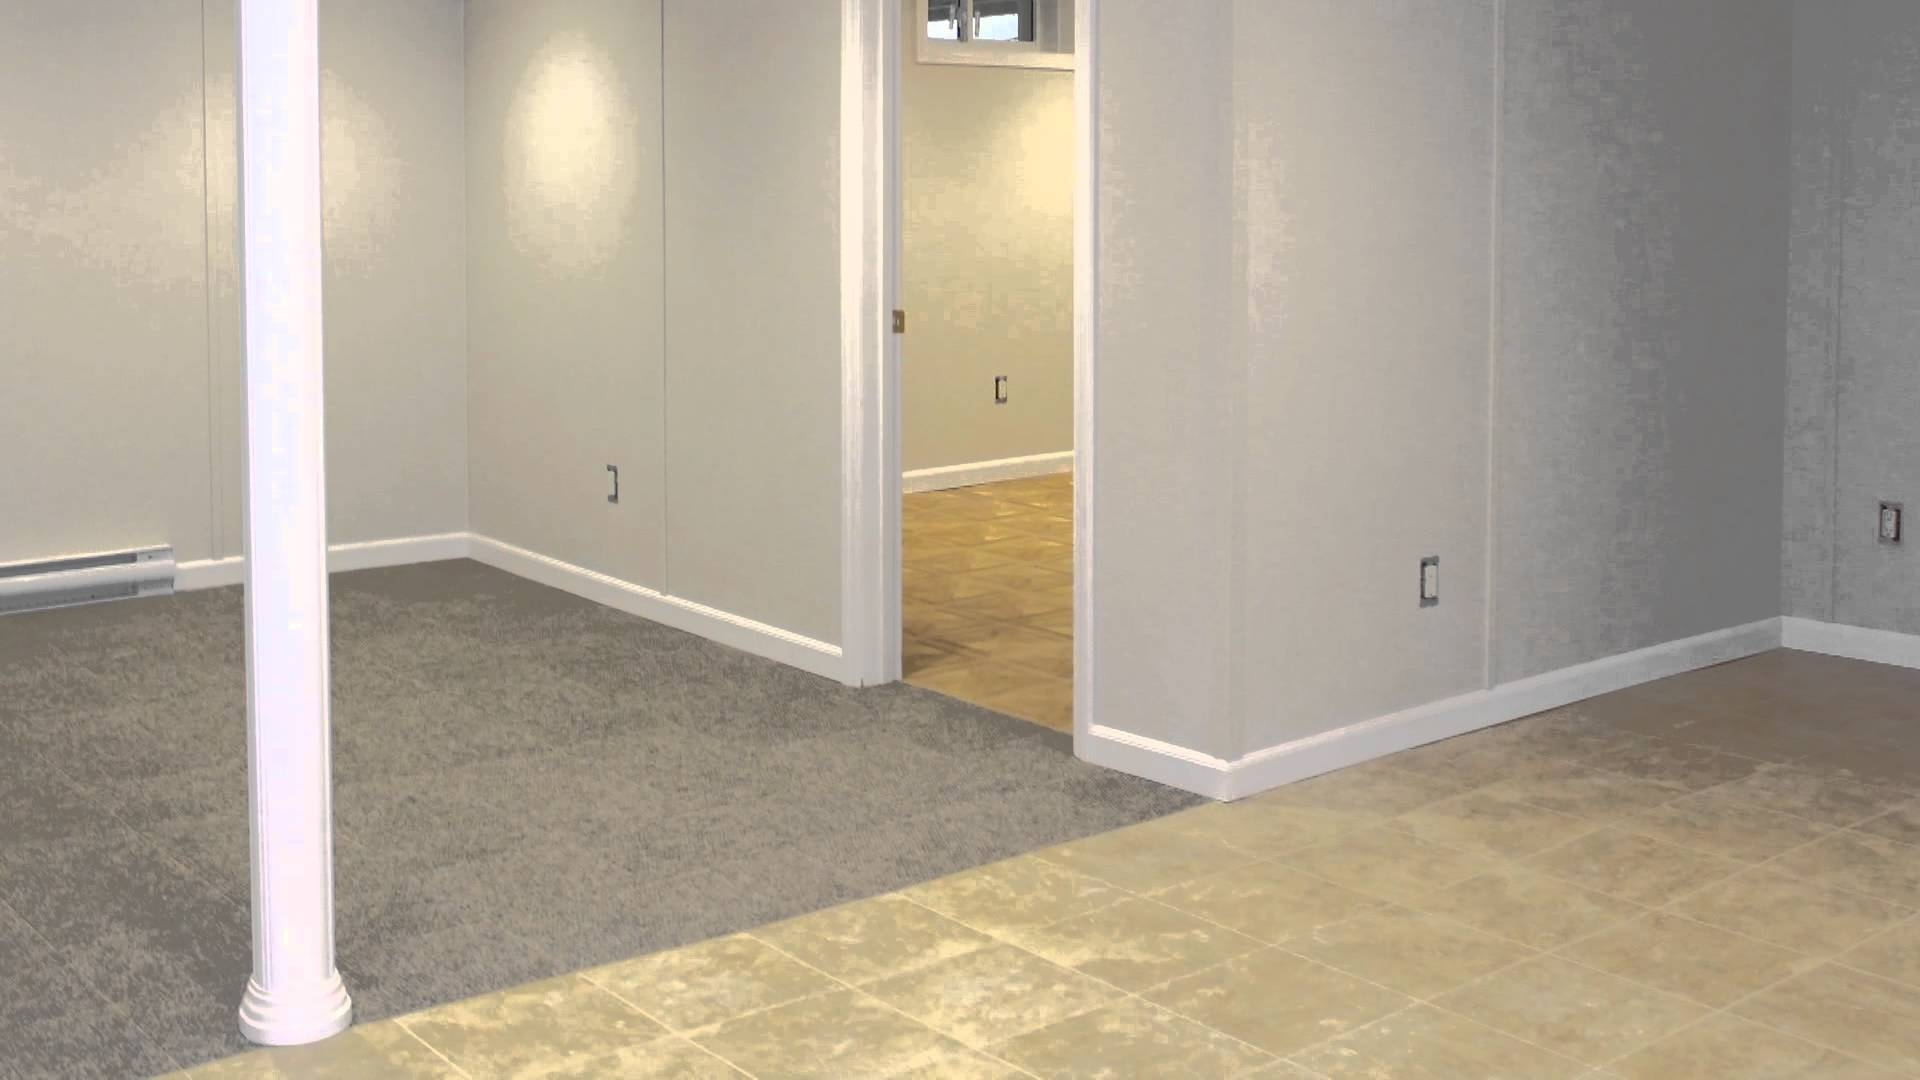 Finished Basement Wall Systems